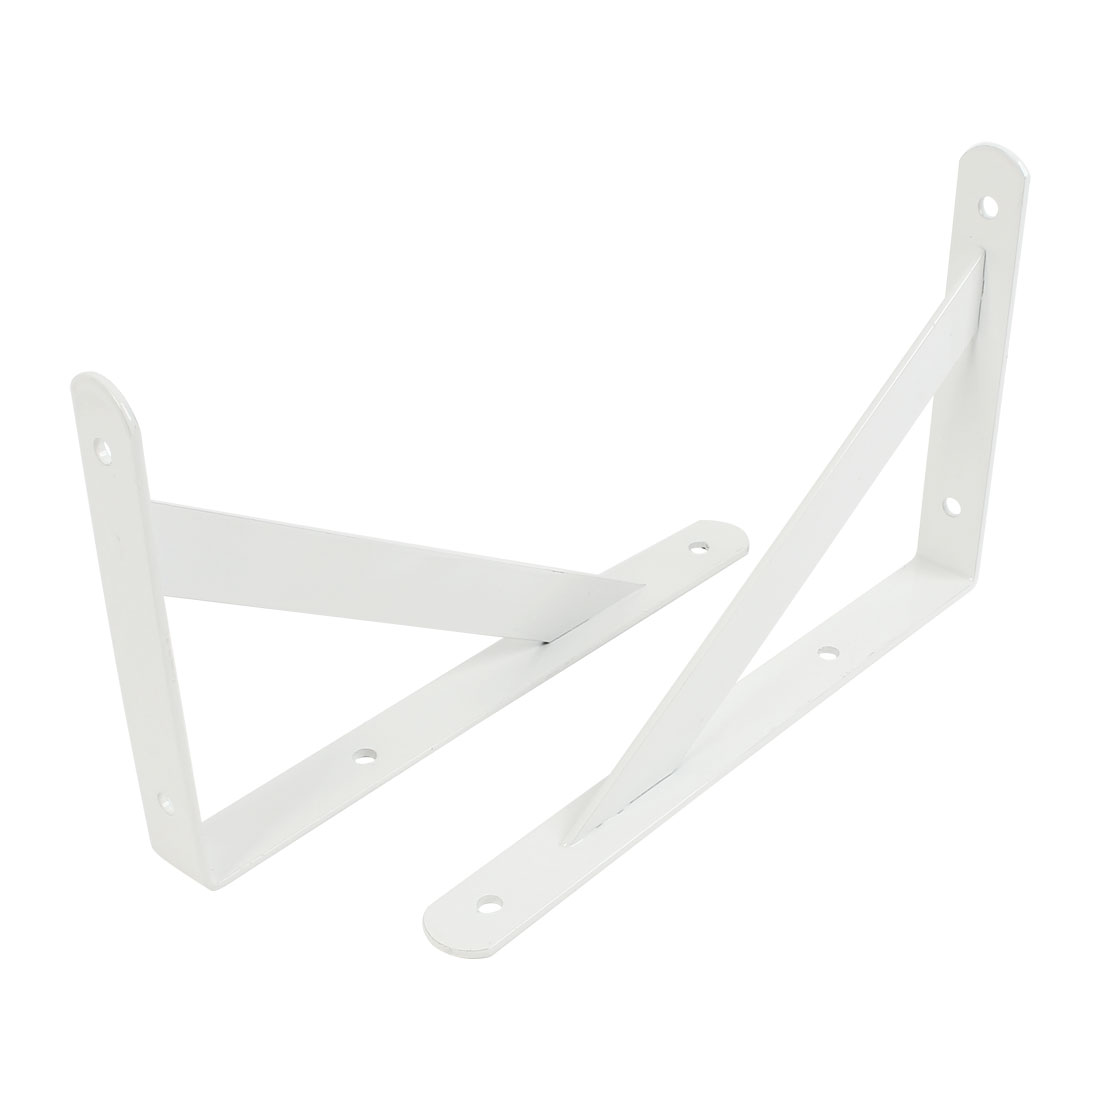 "2 Pcs White 90 Degree Shop Store Wall Mounted Shelf Brackets 10"" x 6"""